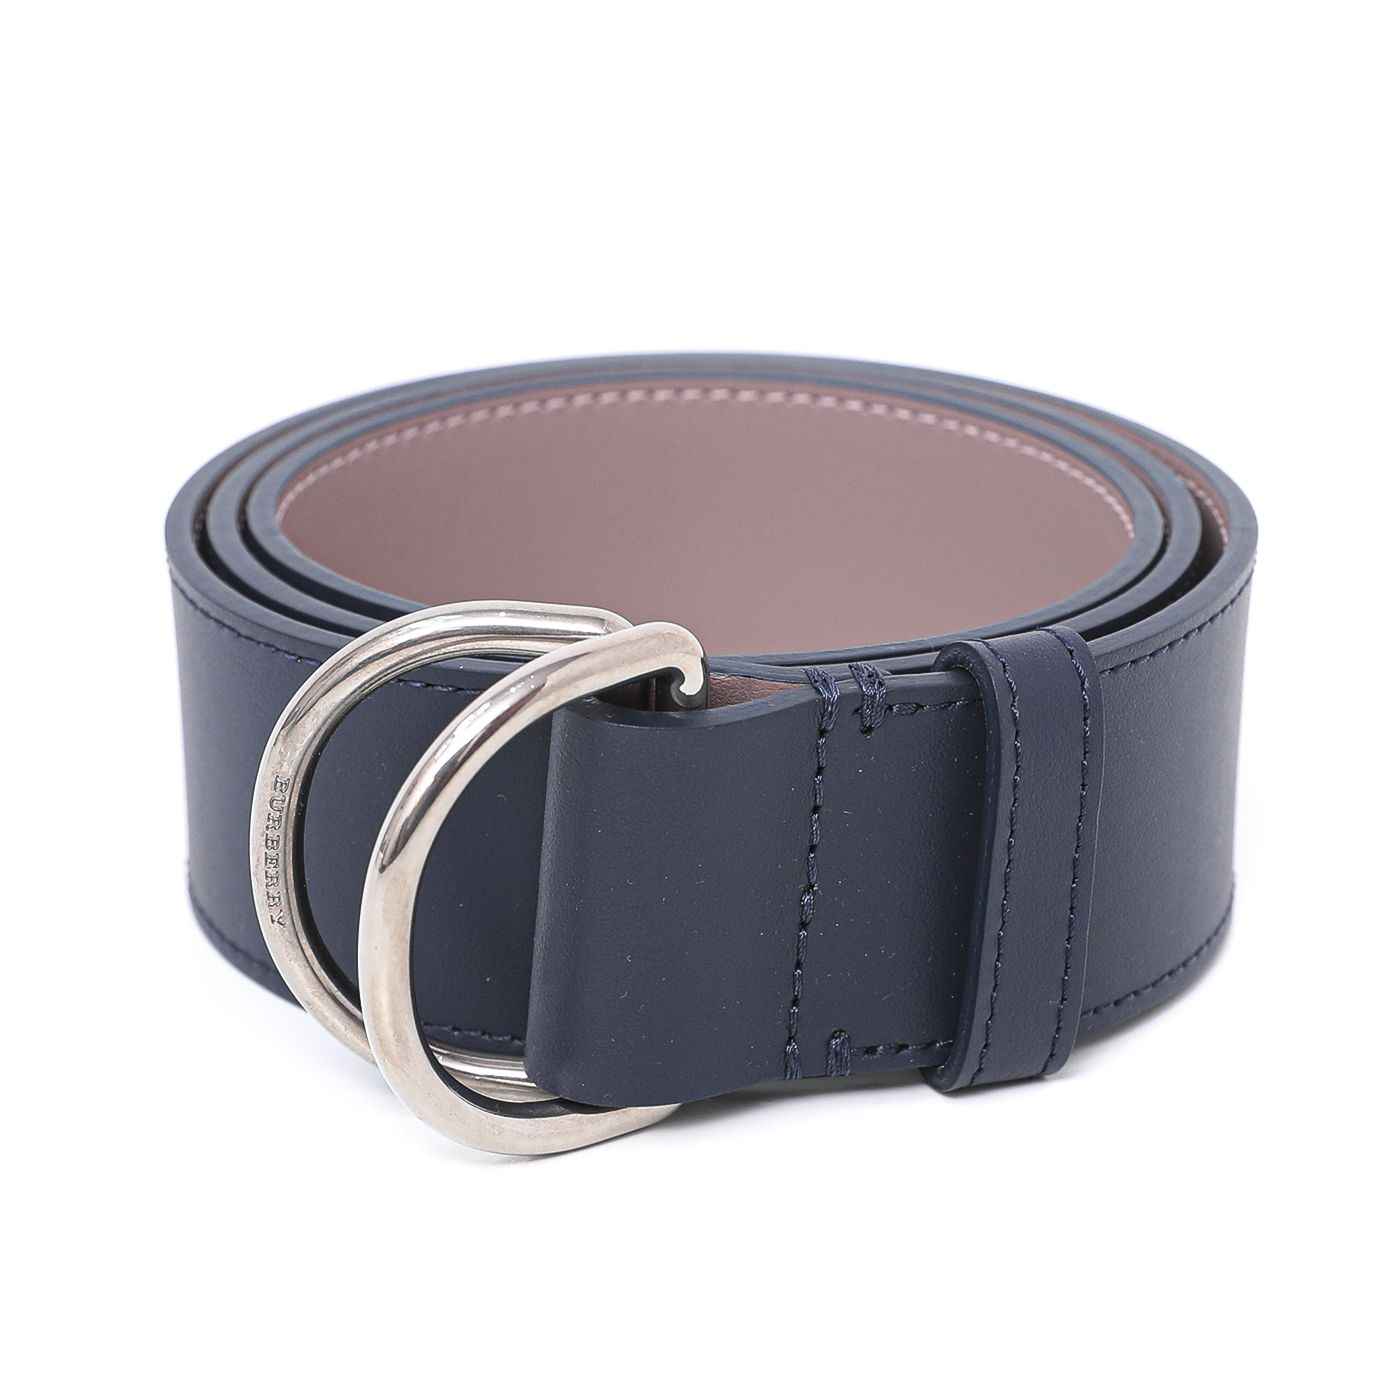 Burberry Bicolor Double D Ring Buckle Belt